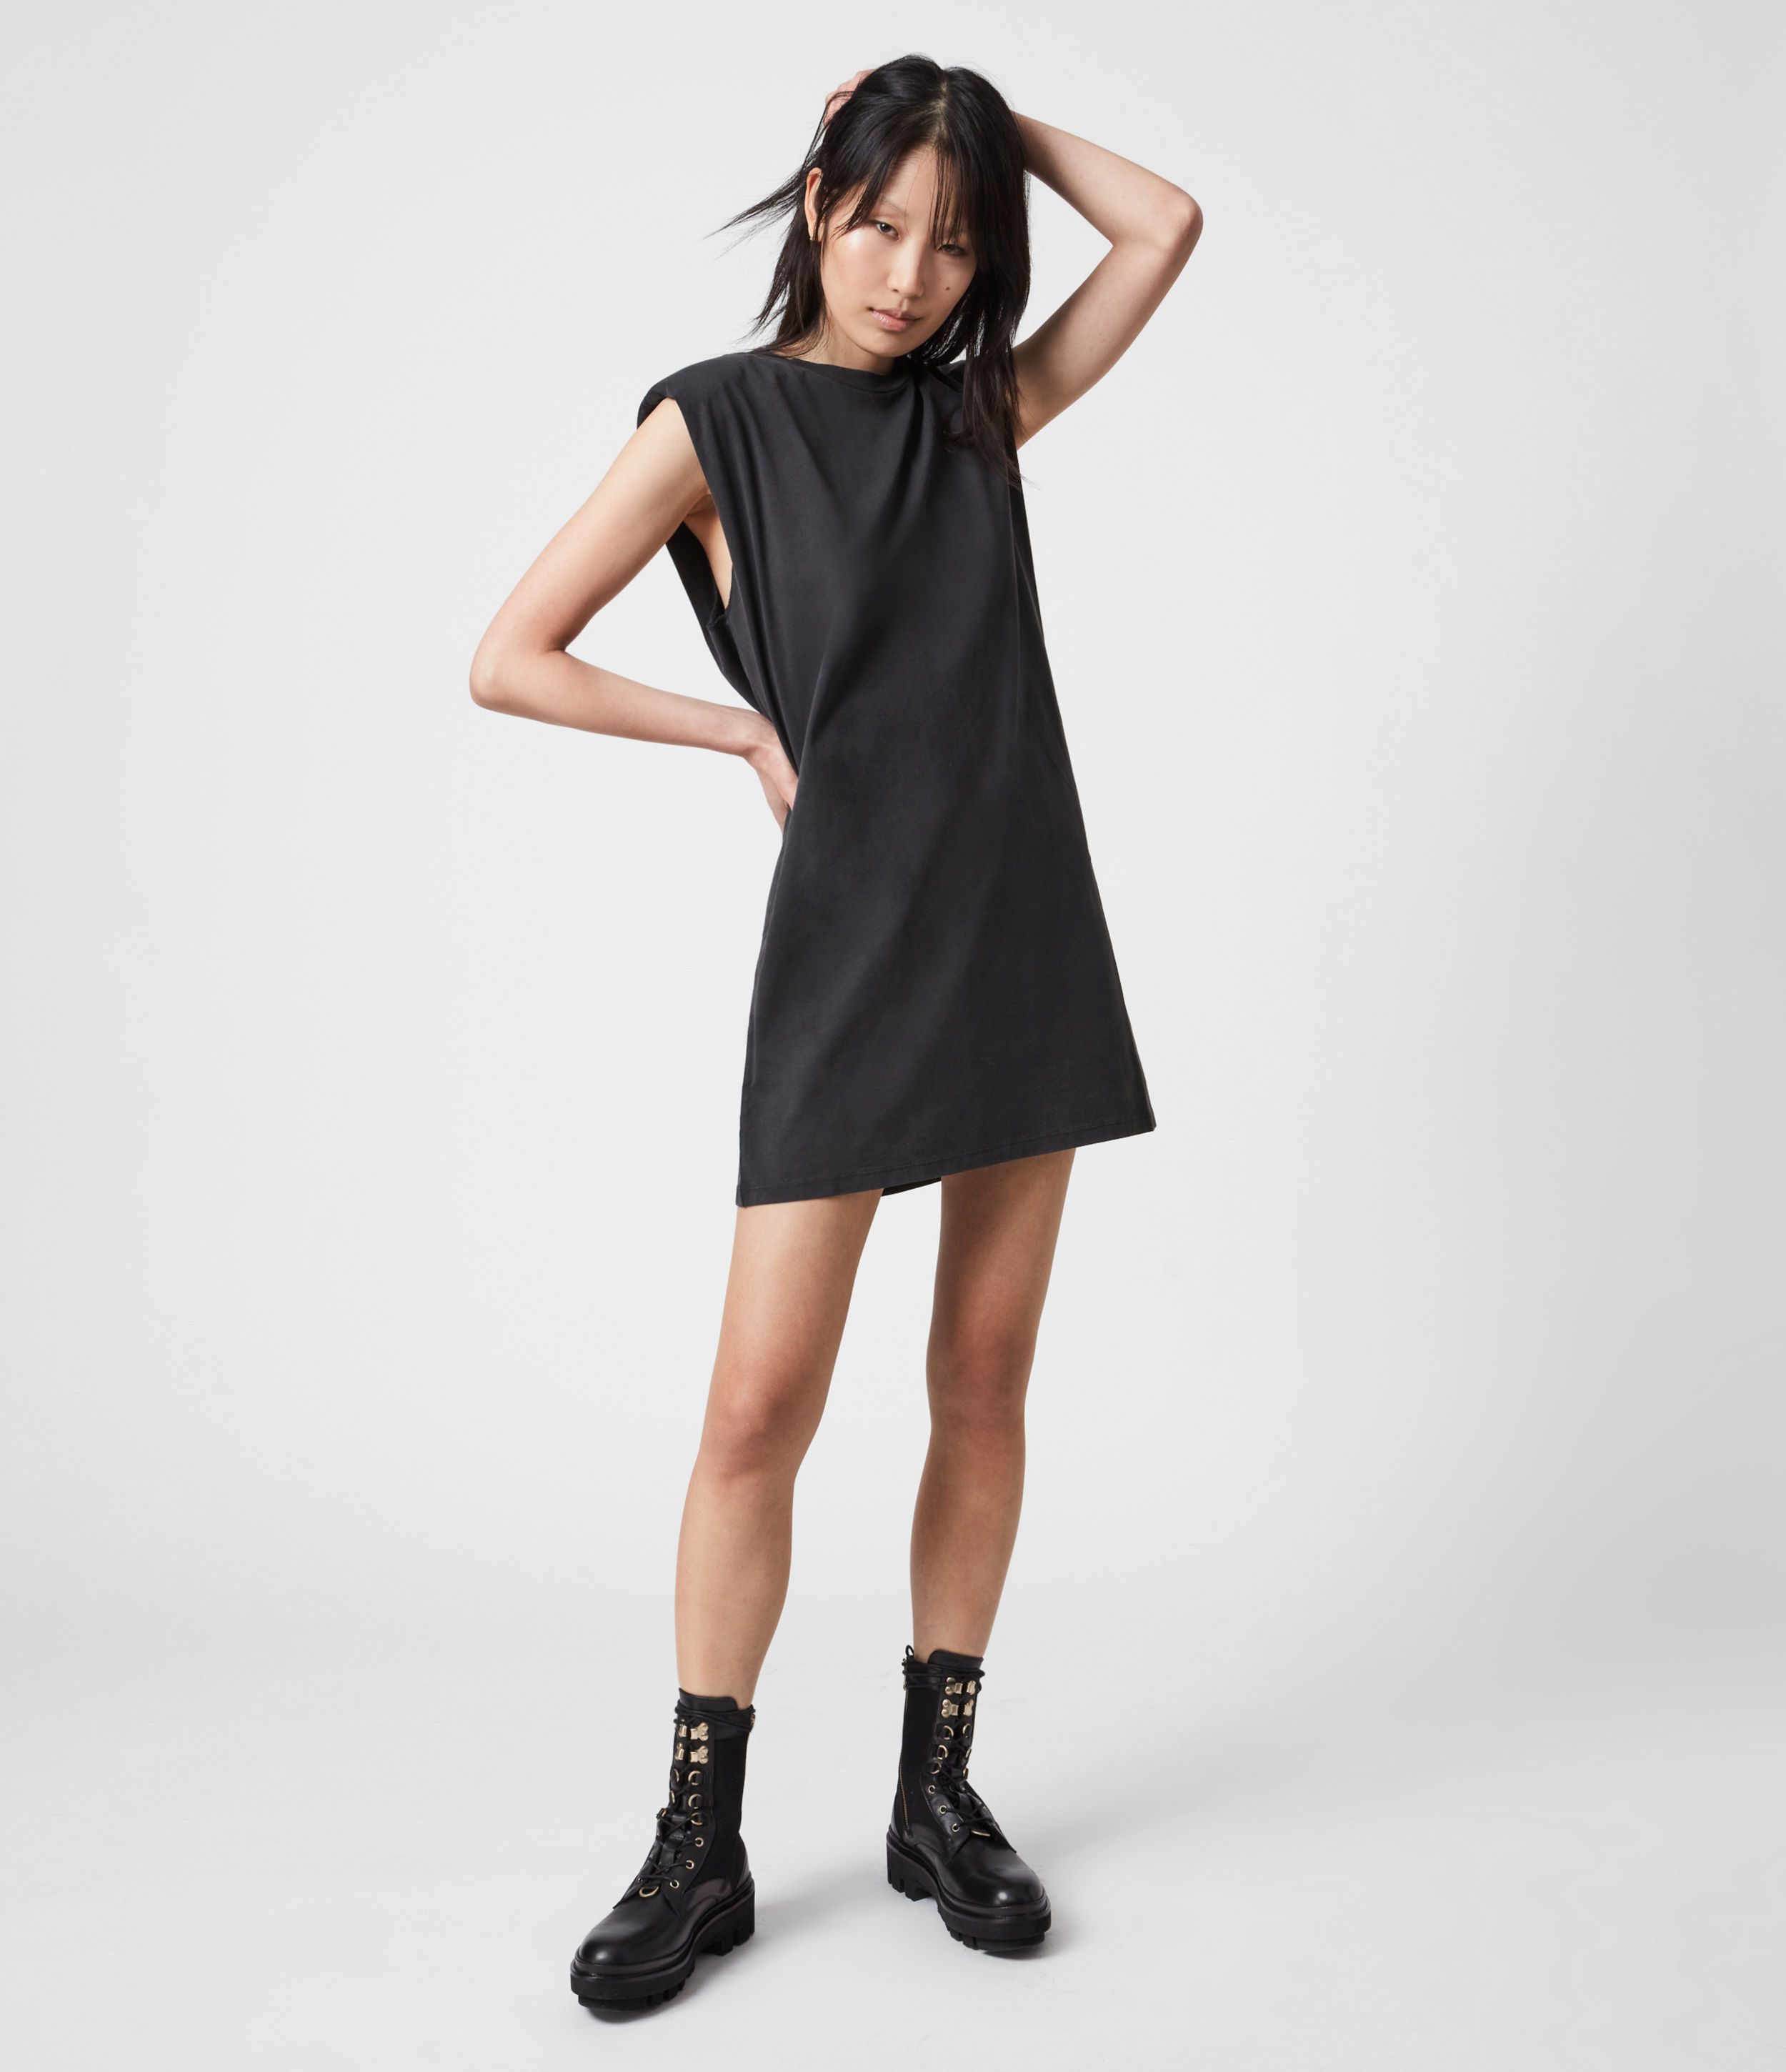 AllSaints Womens Coni Organic Cotton Tank Dress, Acid Washed Black, Size: L